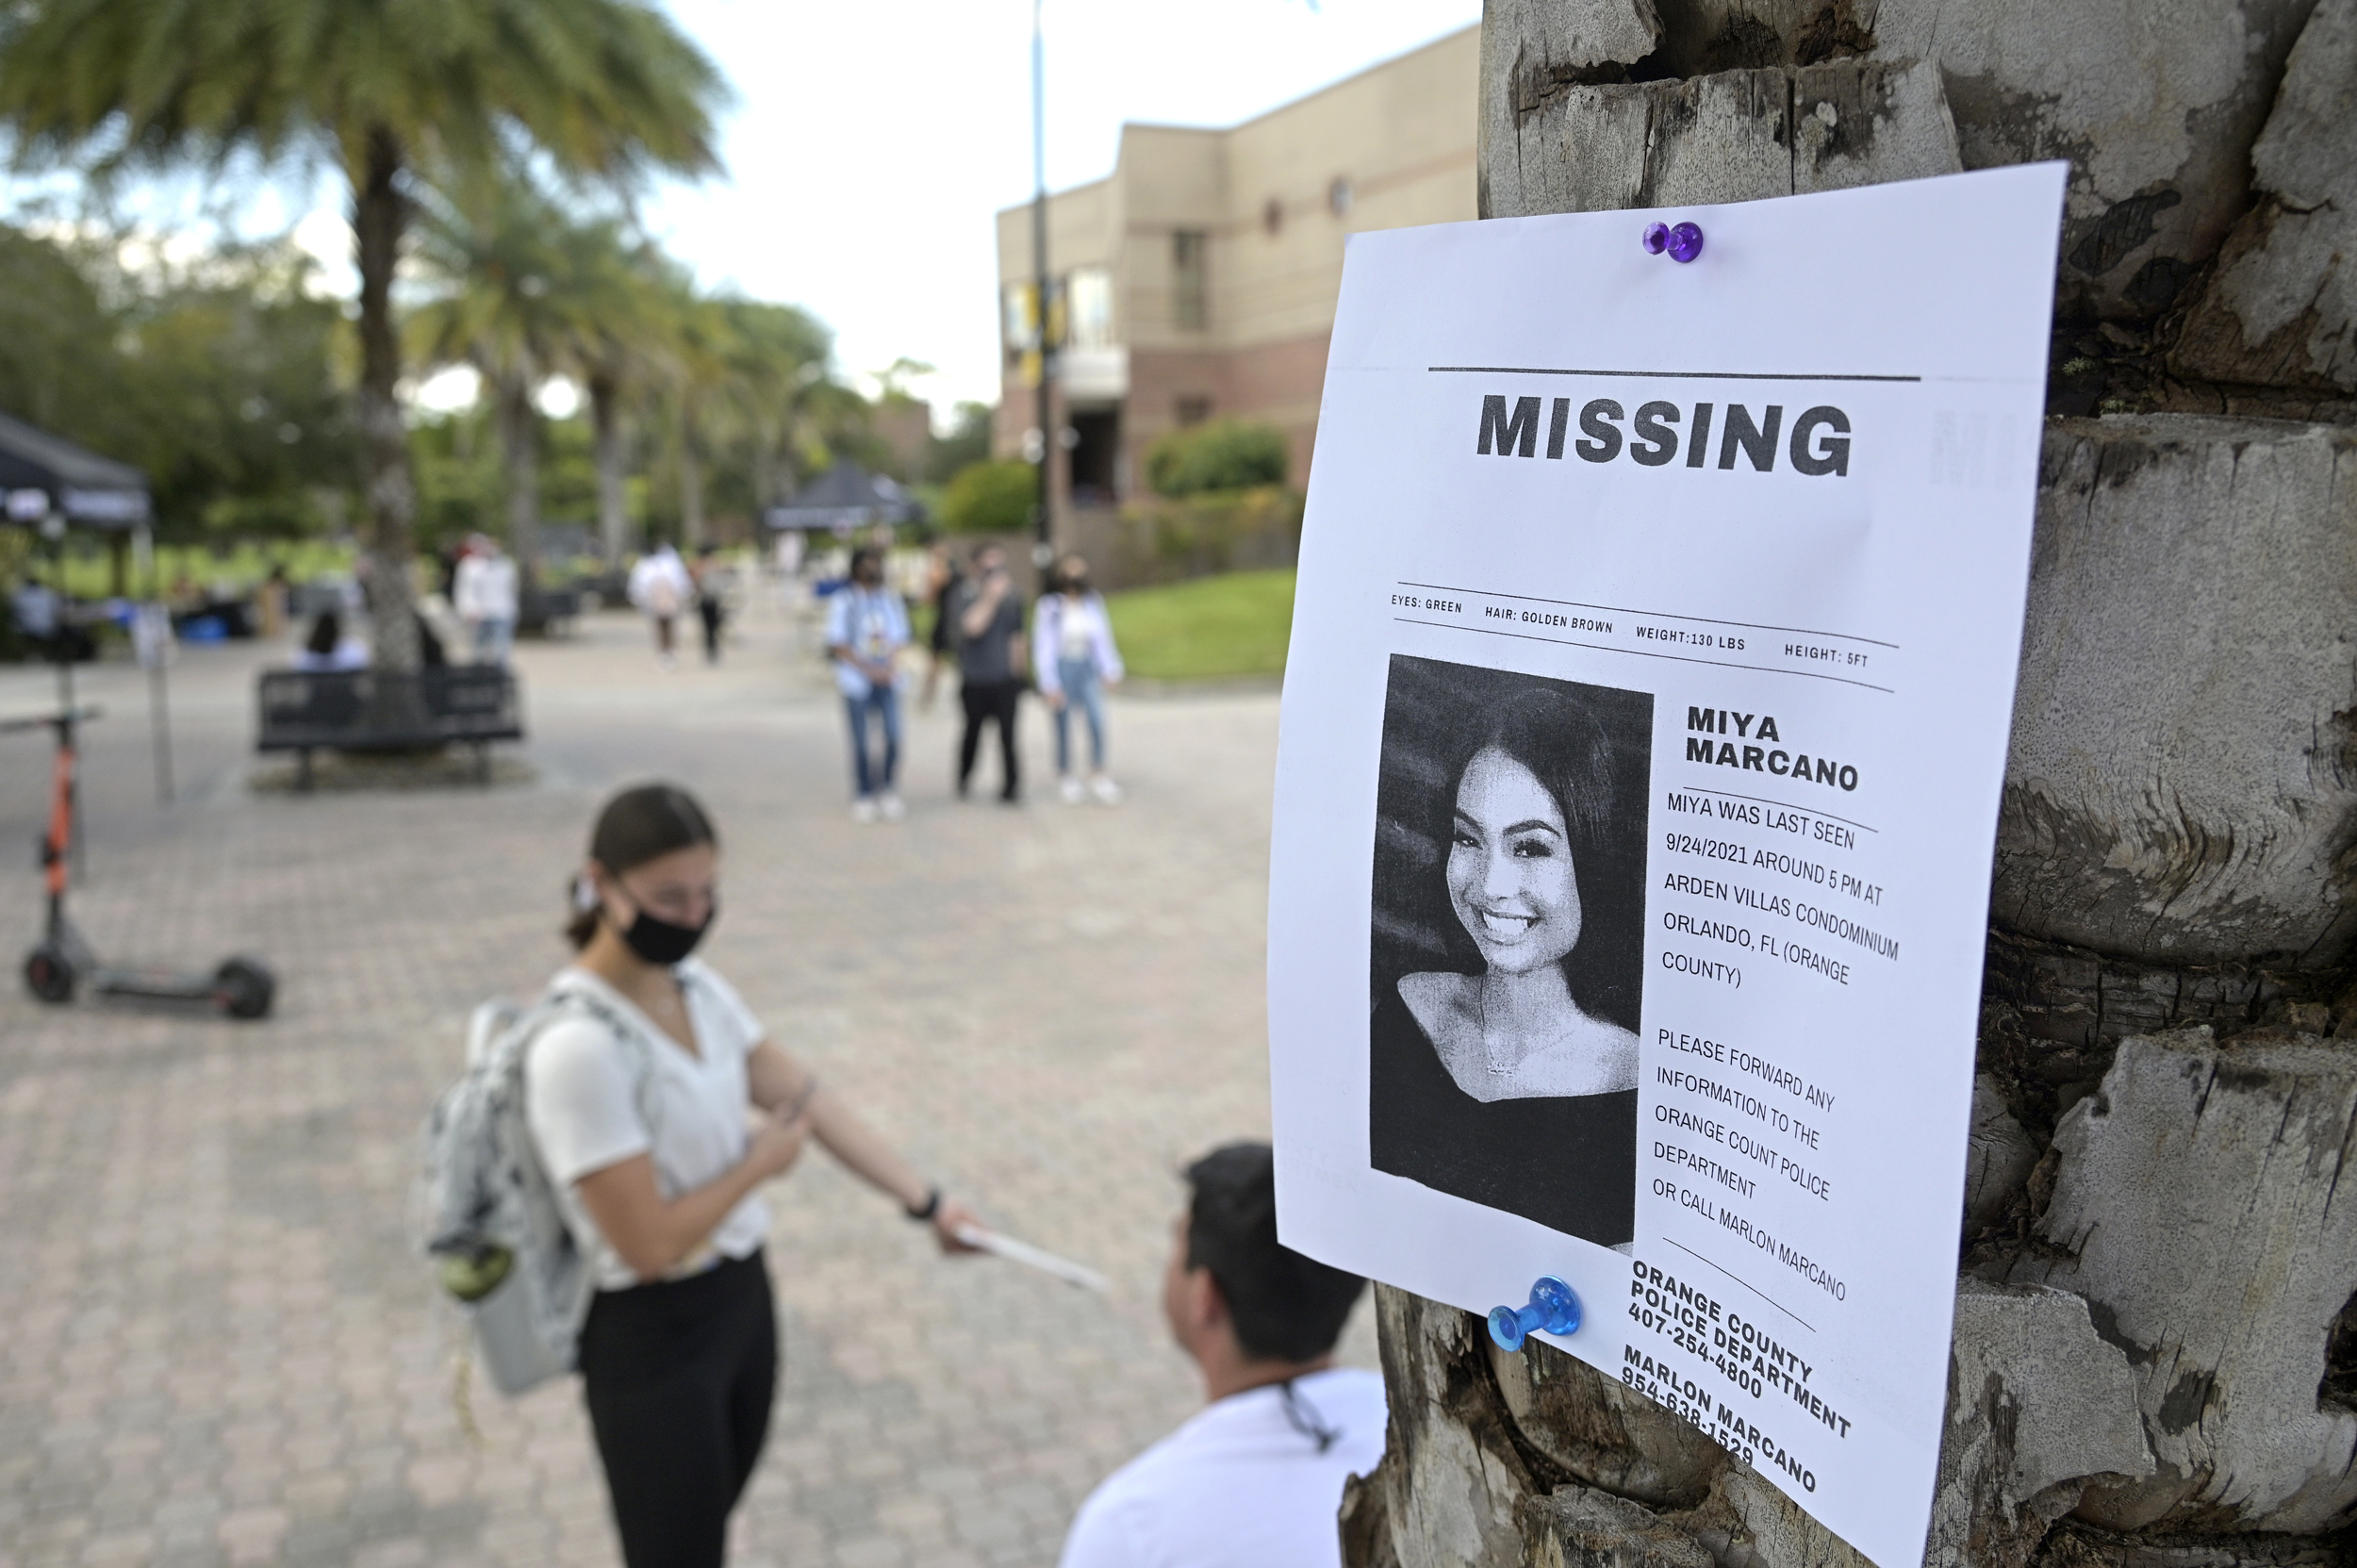 Body found near apartment complex confirmed to be Florida student Miya Marcano